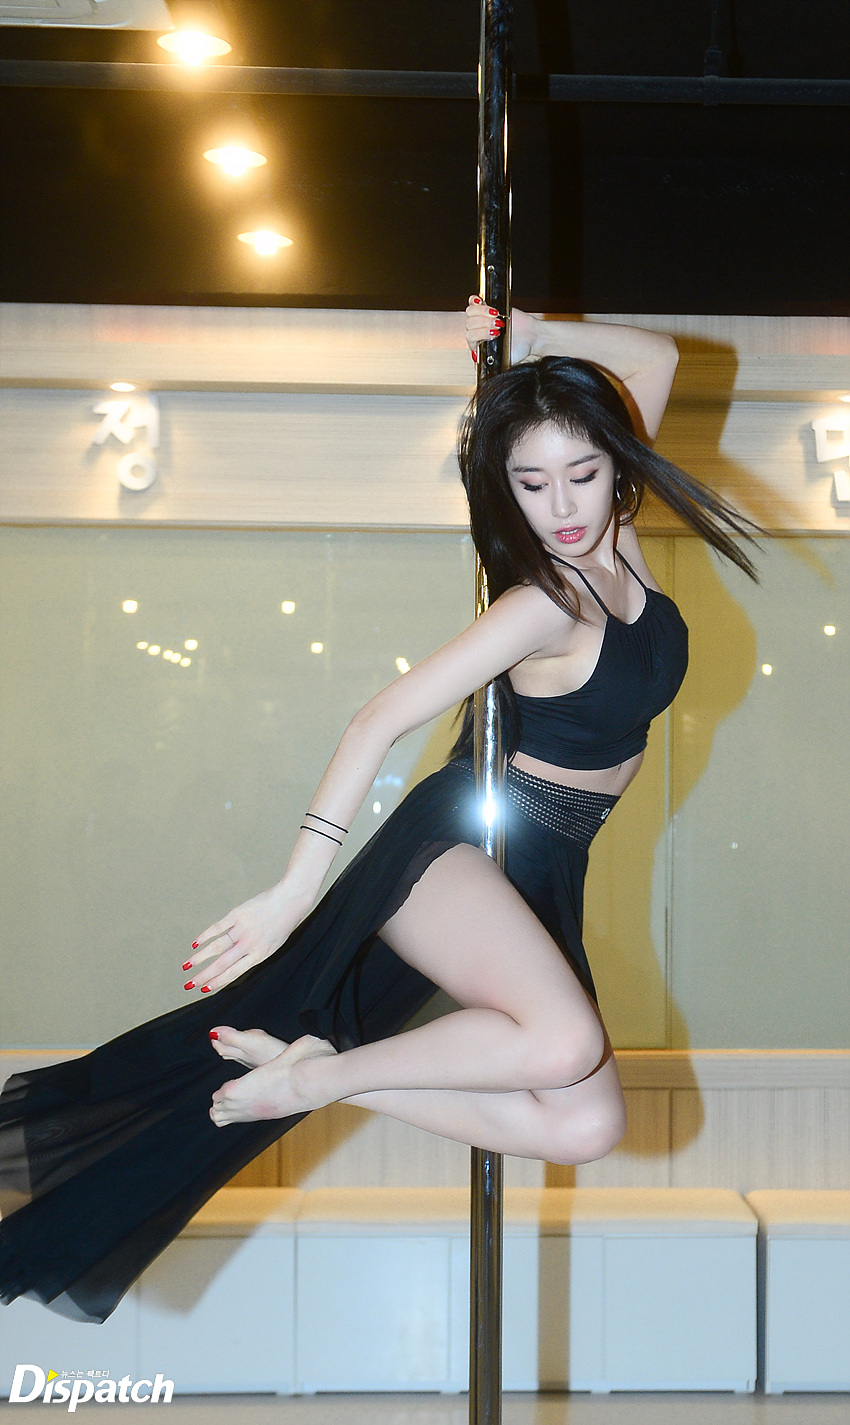 T Ara Jiyeon Causes Nosebleed With These Pole Dancing Pics Ideas And Designs